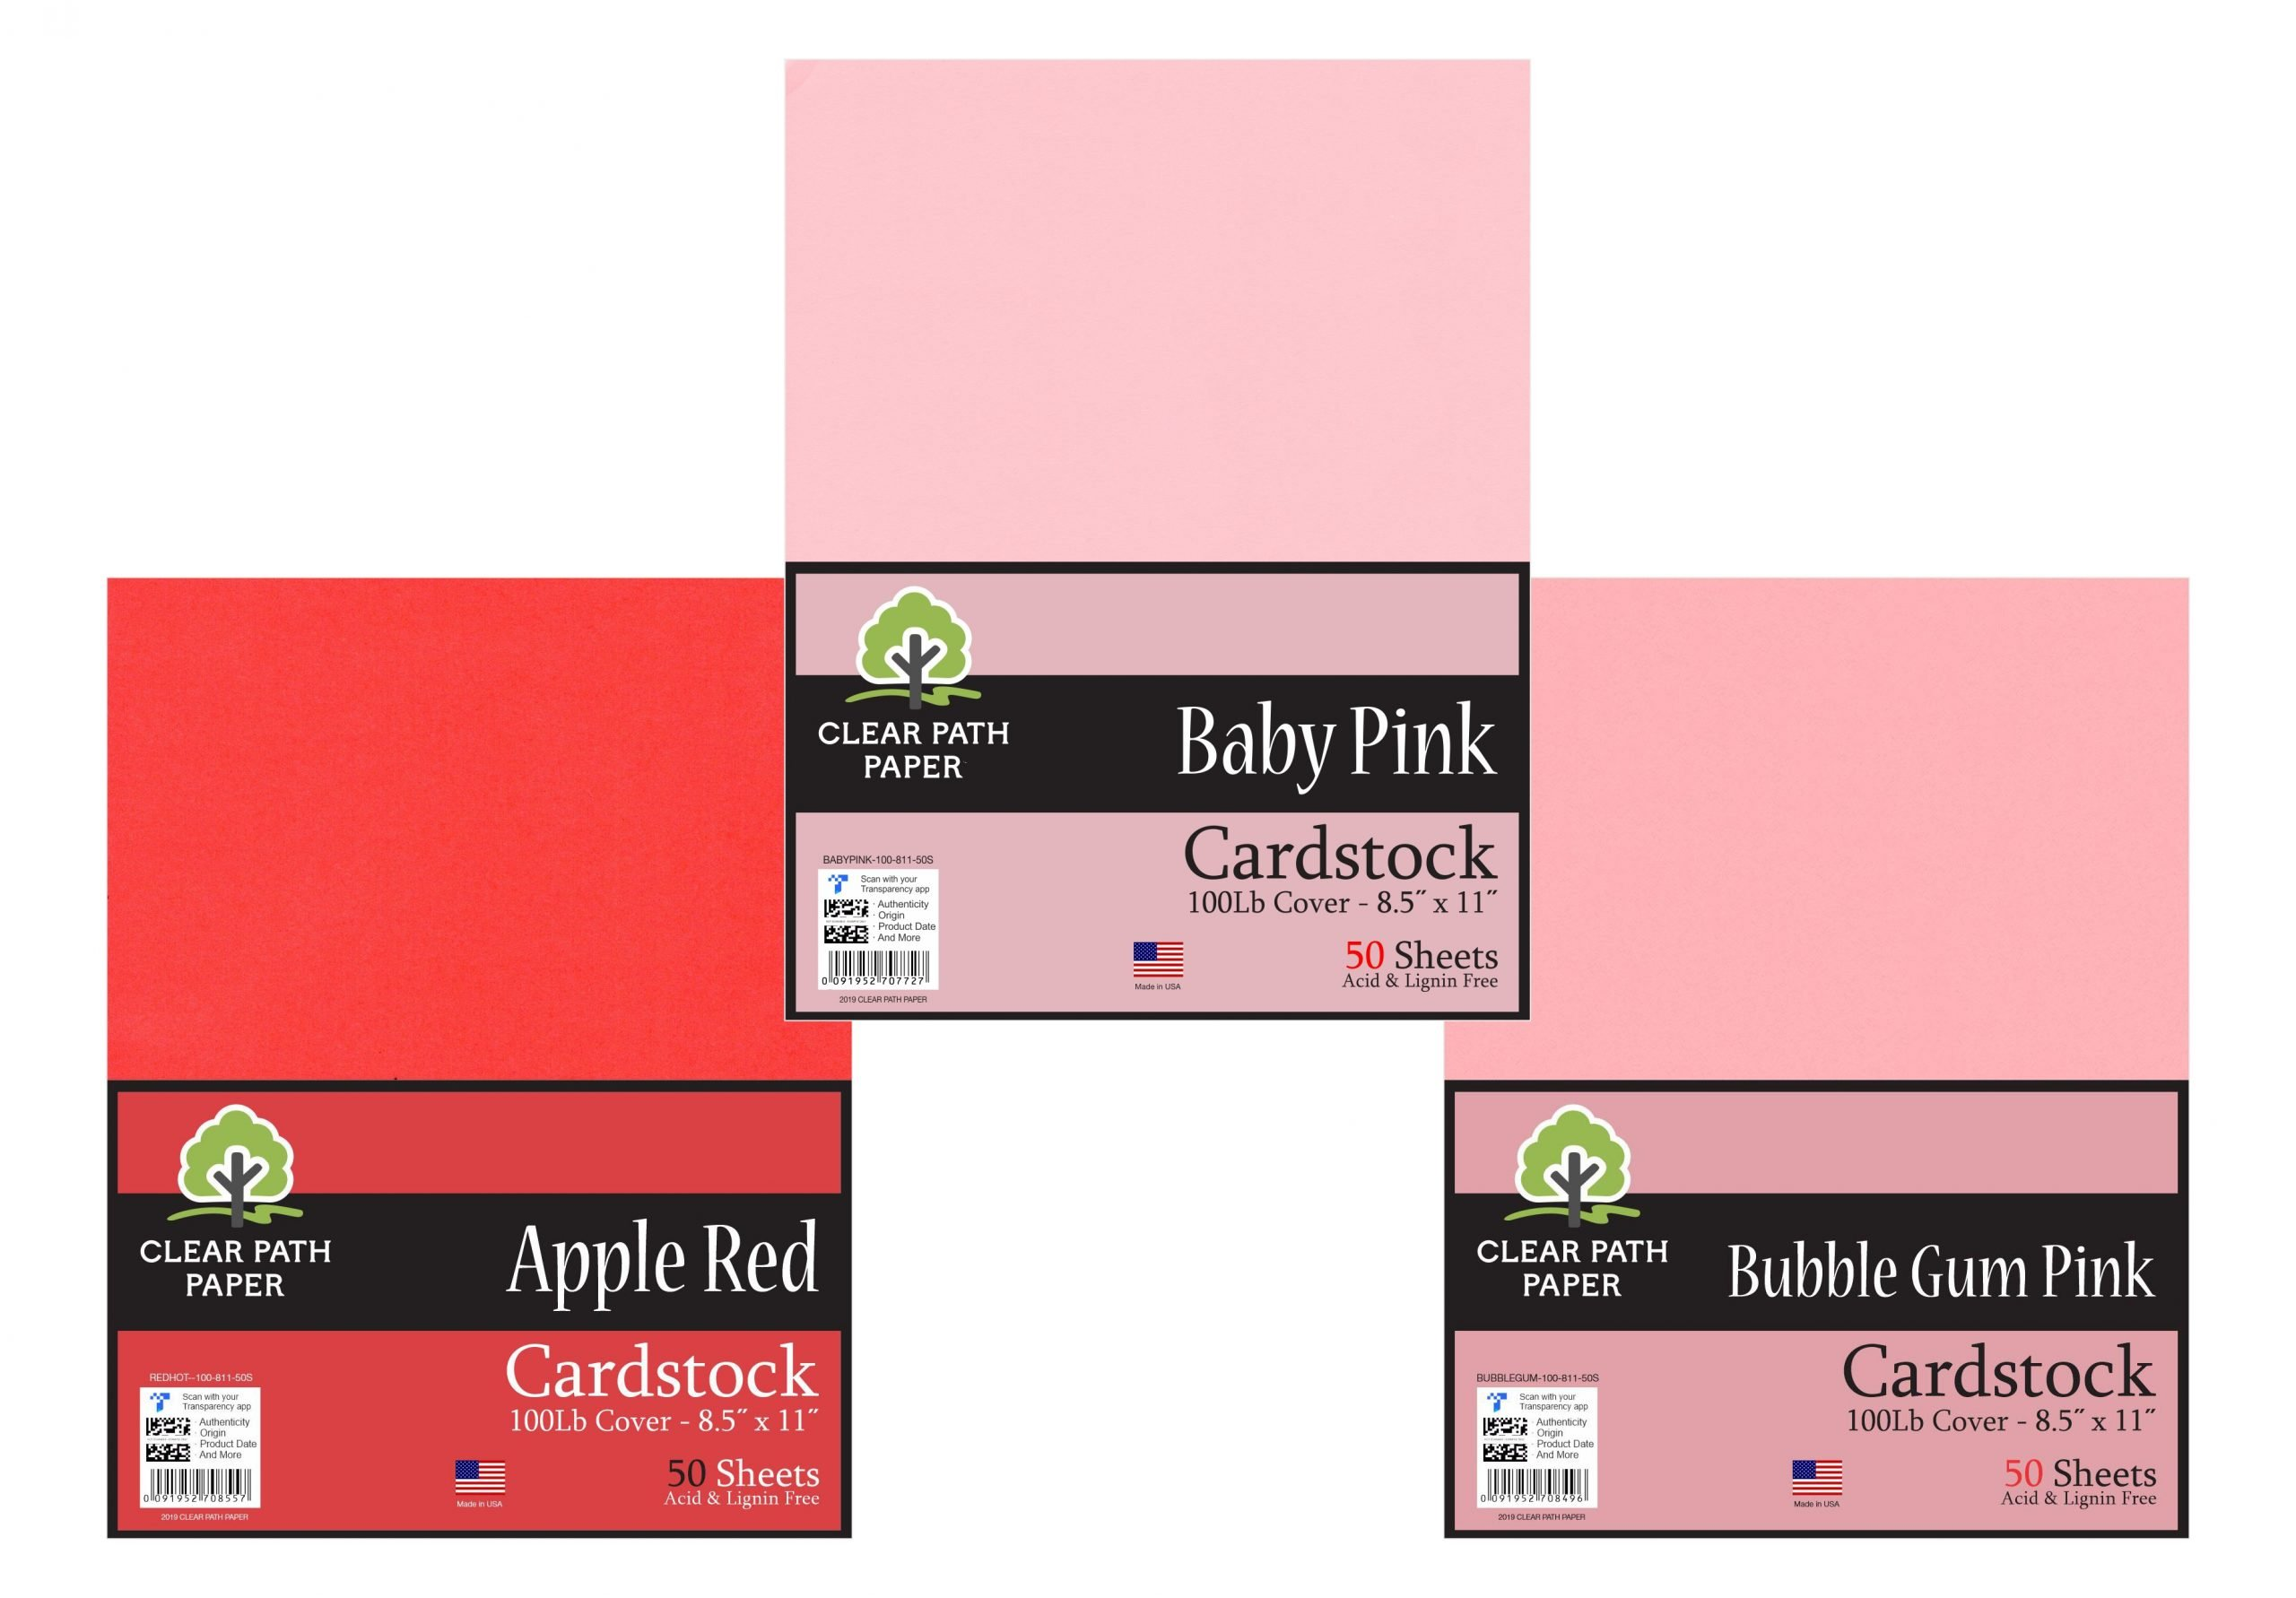 Baby Pink / Apple Red / Bubble Gum Pink